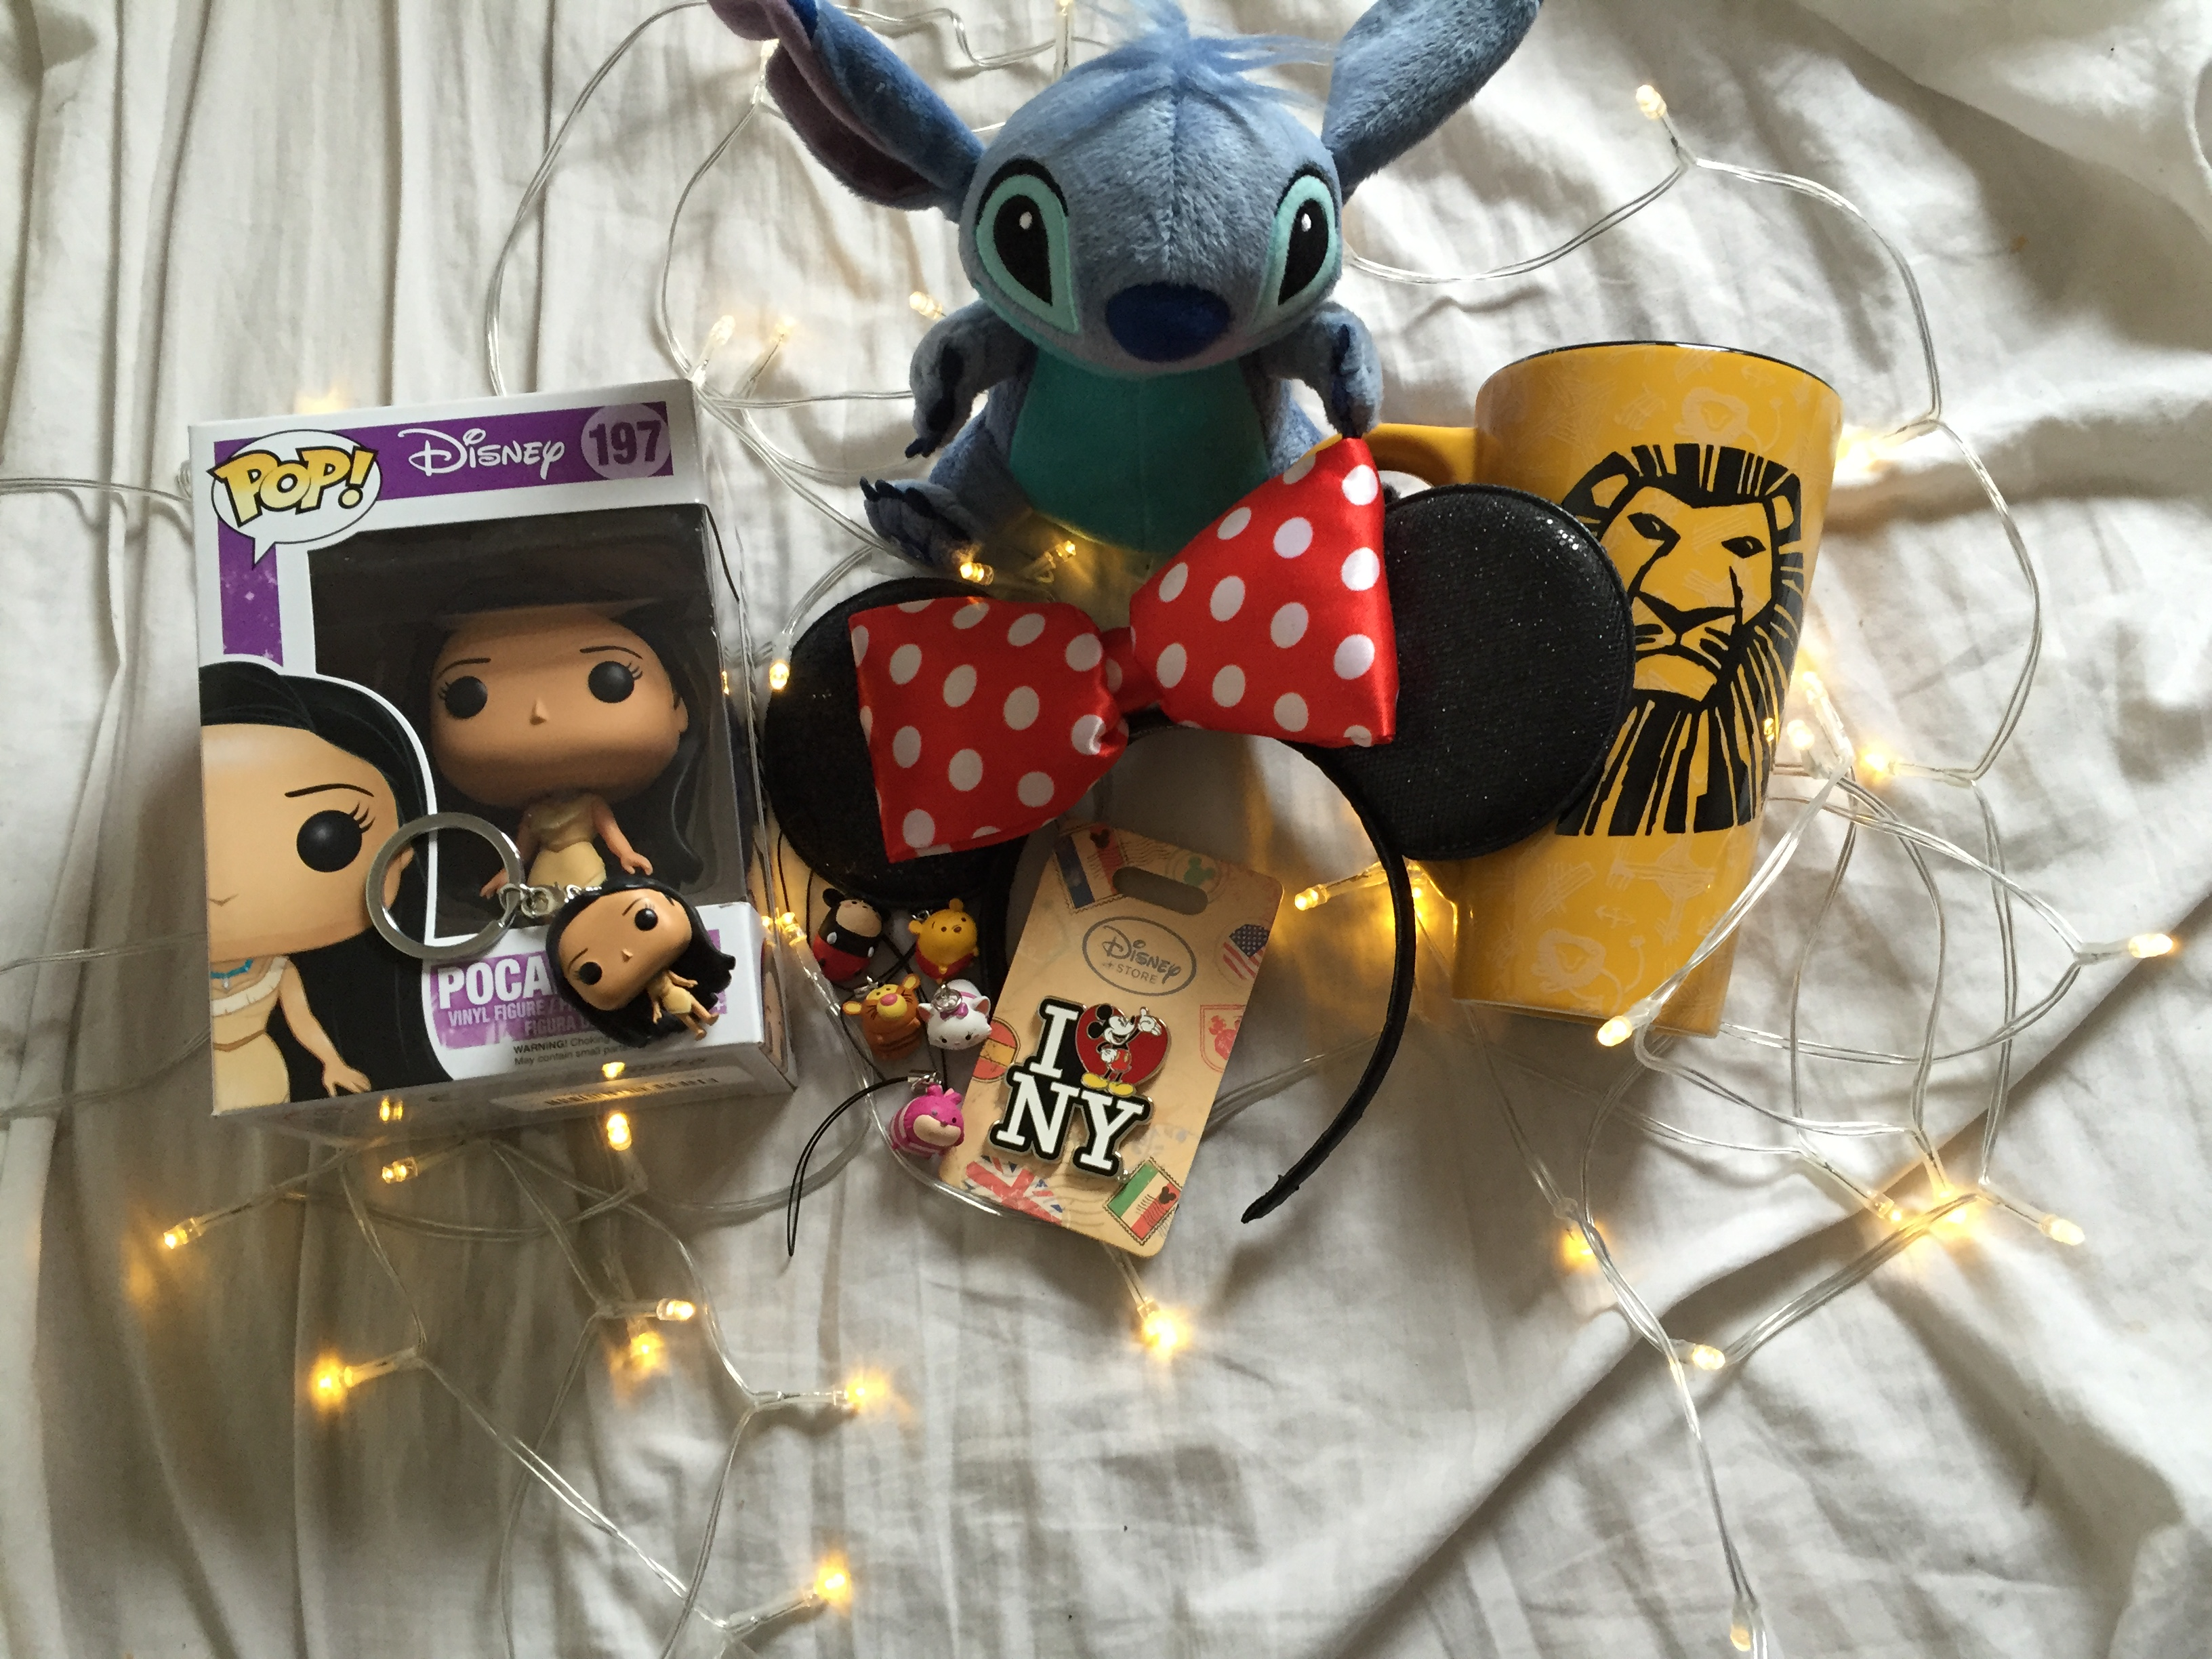 A Teeny Tiny Disney Haul!